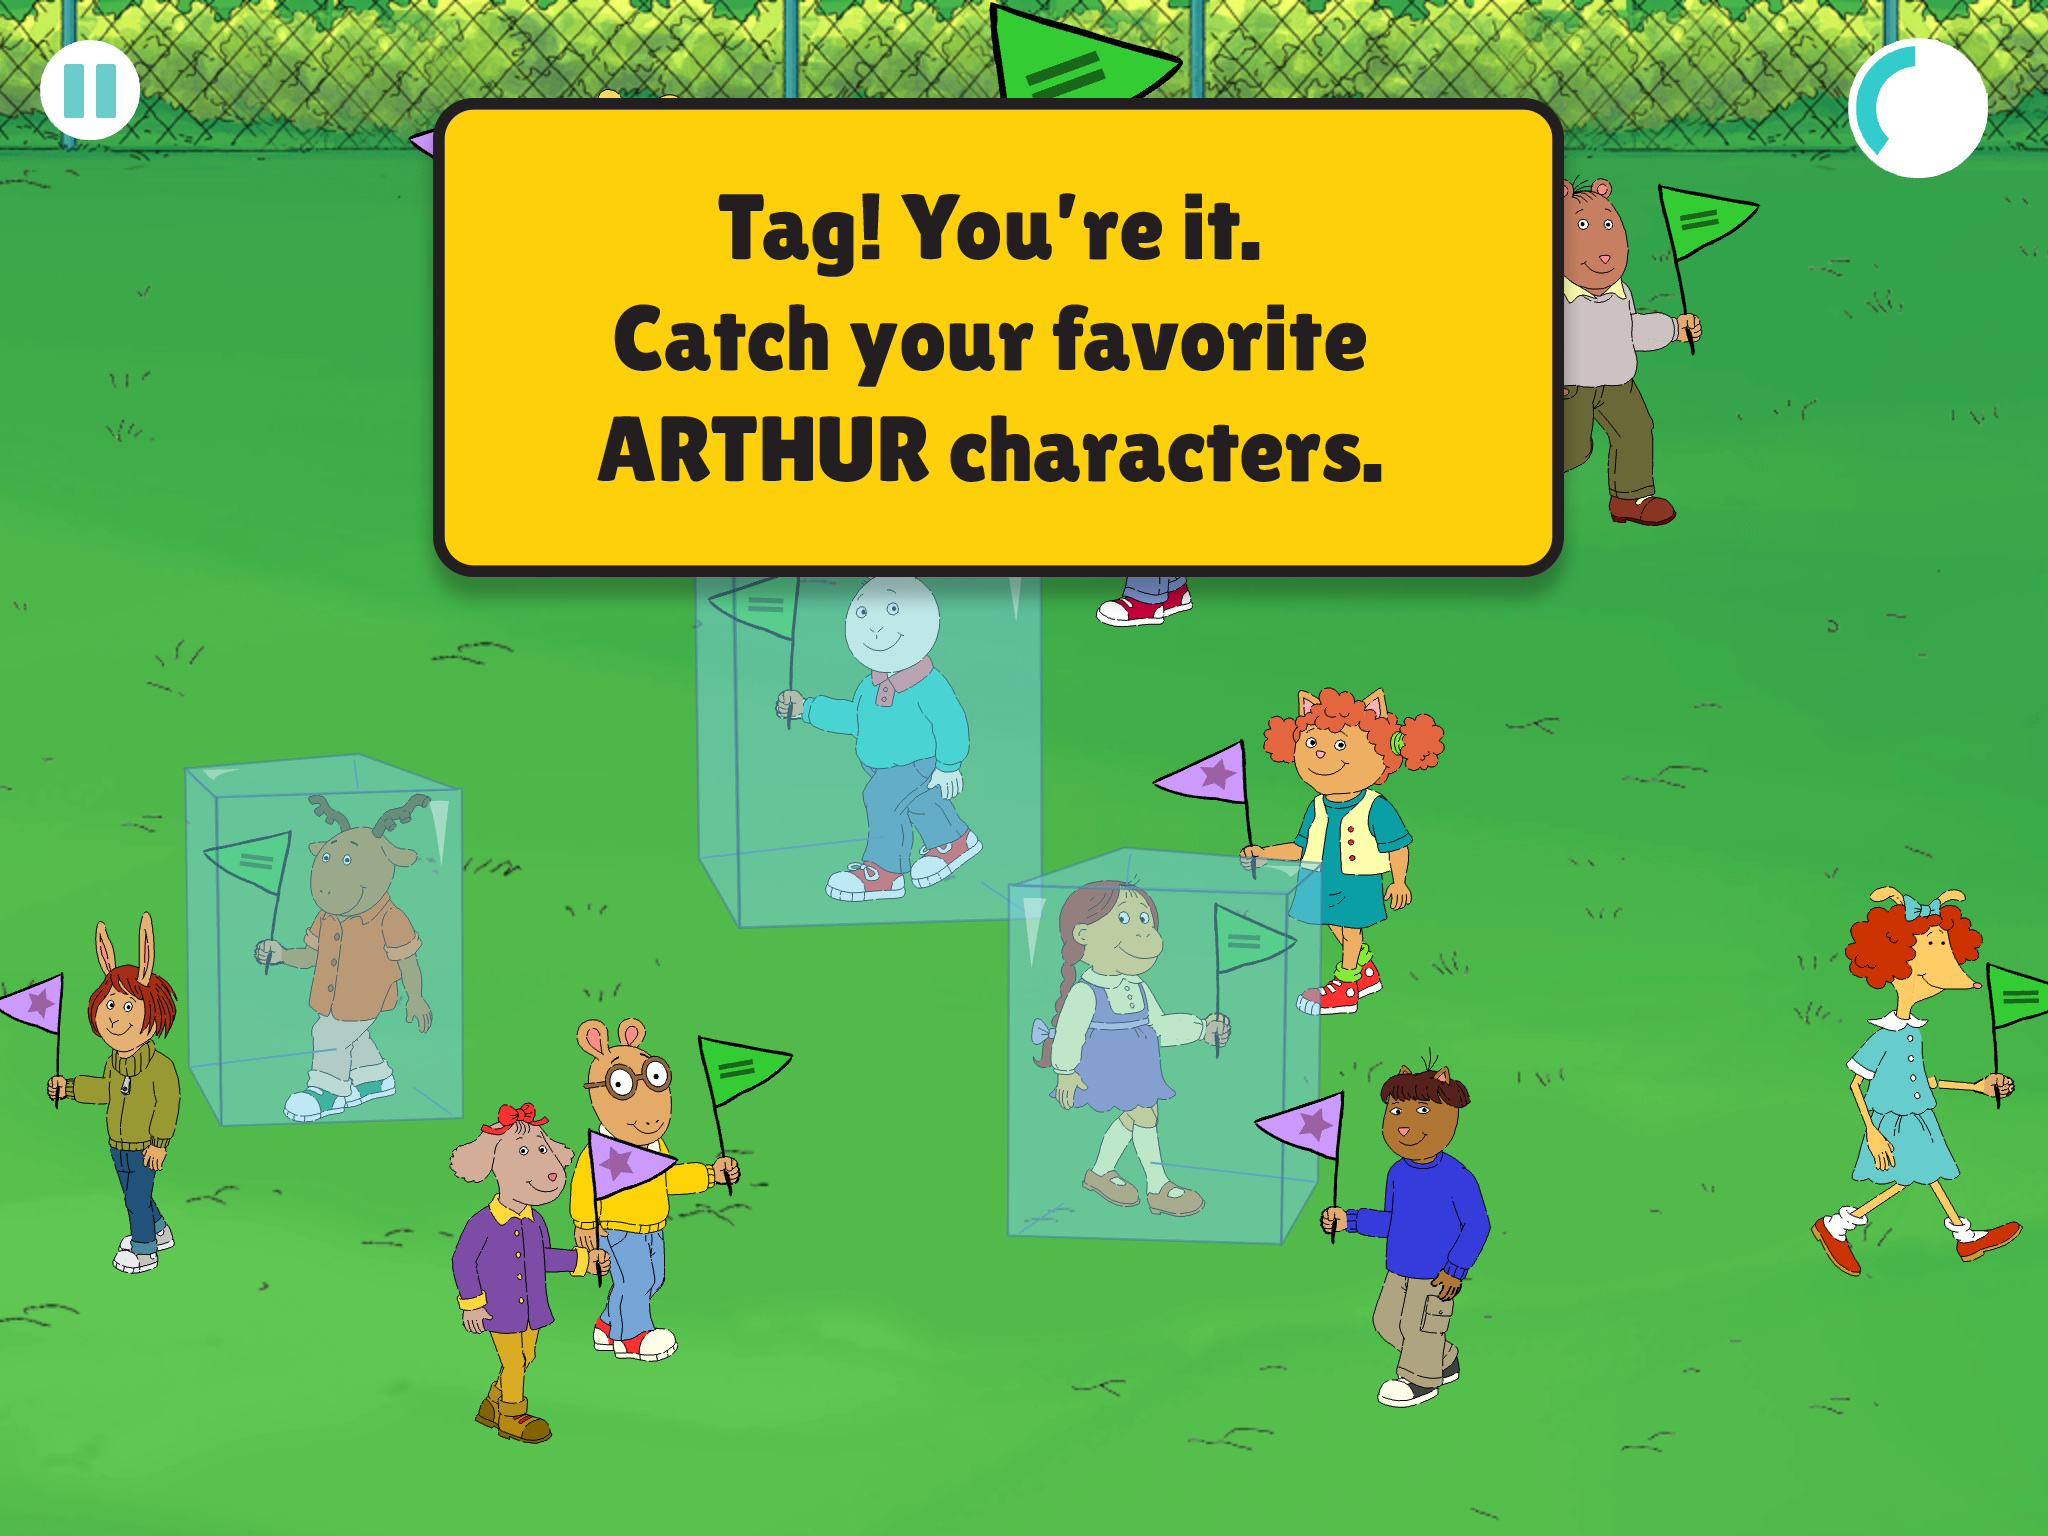 Arthur's Big App screenshot.